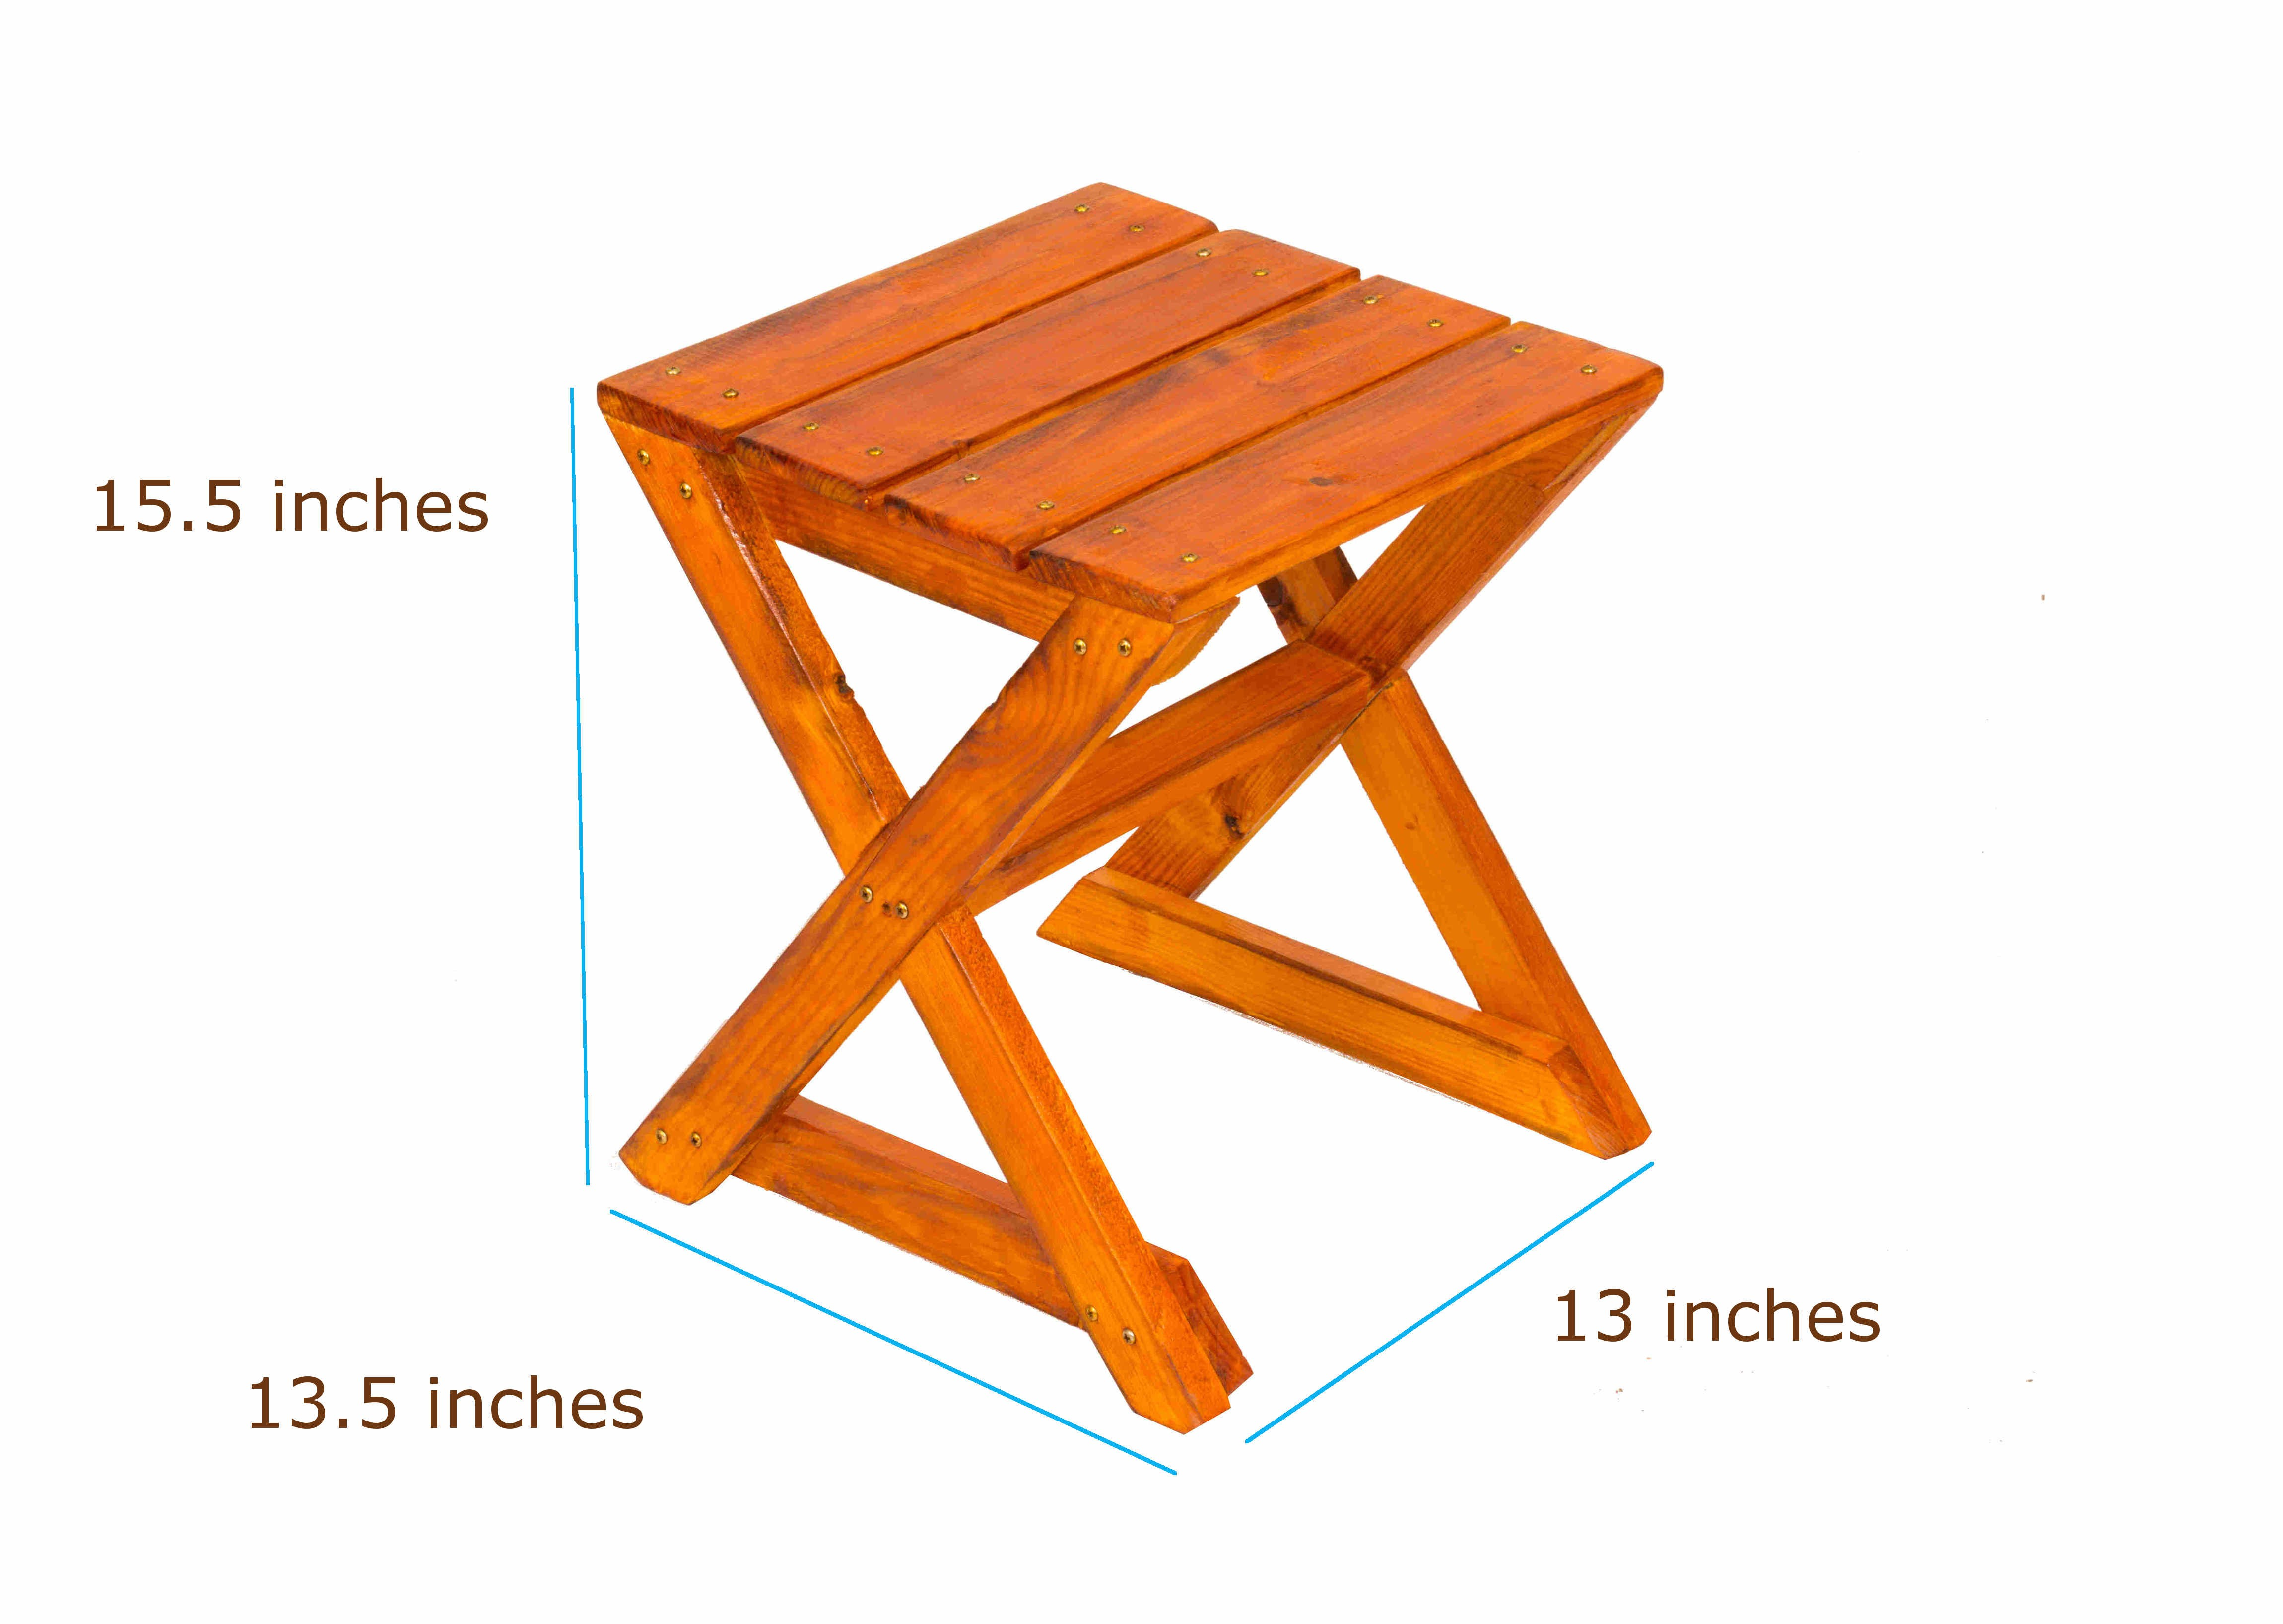 Pine Bedroom Stools Indias First Ecofriendly Furniture Range Made From Upcycled Solid